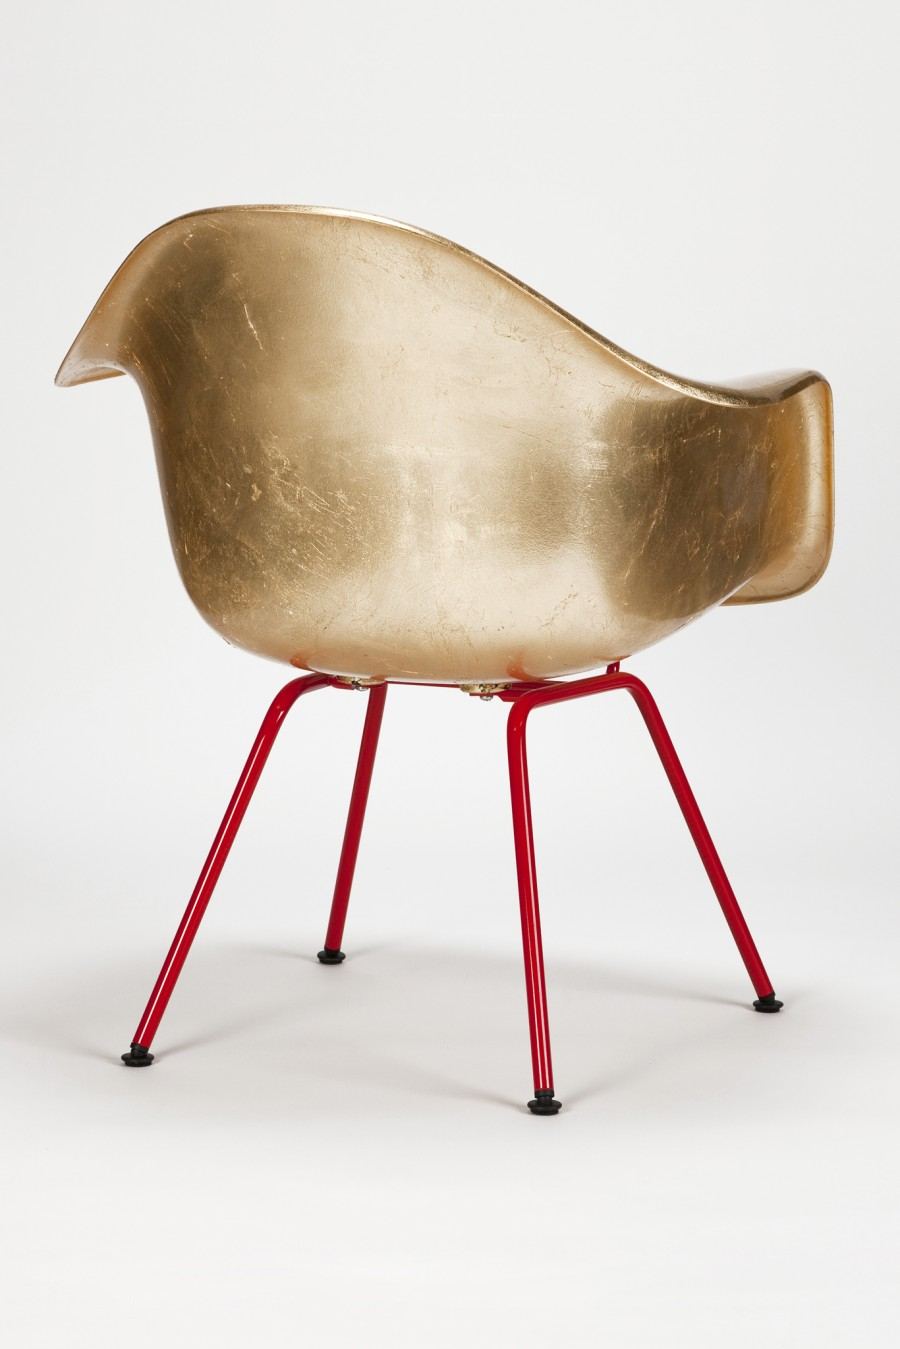 Eames and Jacobsen Go Goldy Gold by Reha Okay - on flodeau.com 06